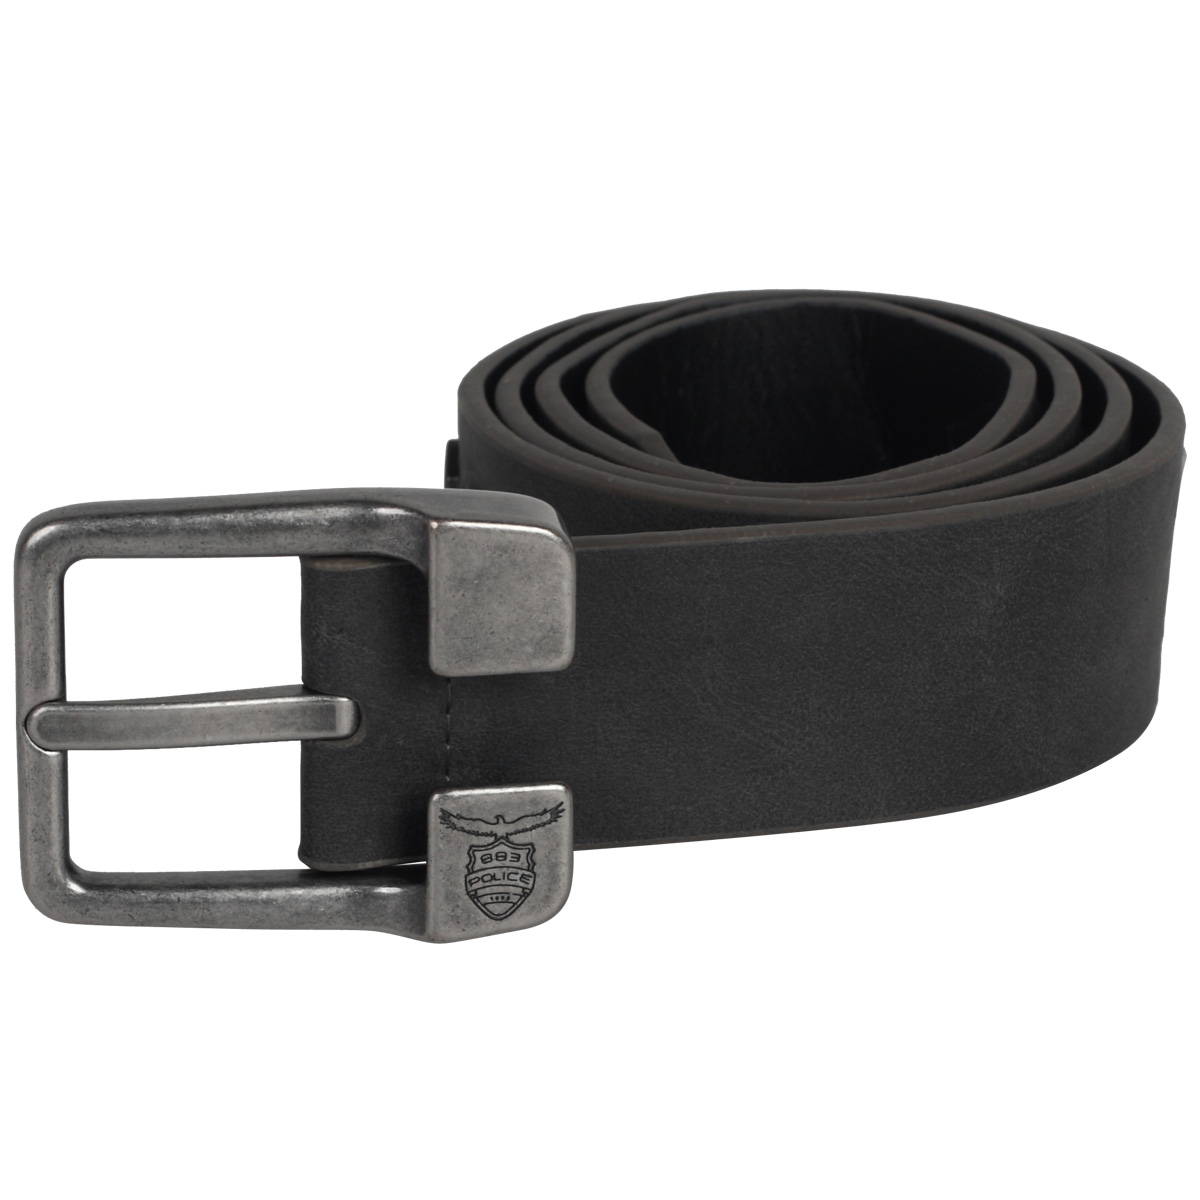 designer brand belts kapb  NEW-MENS-883-POLICE-DESIGNER-BRANDED-LEATHER-BUCKLE